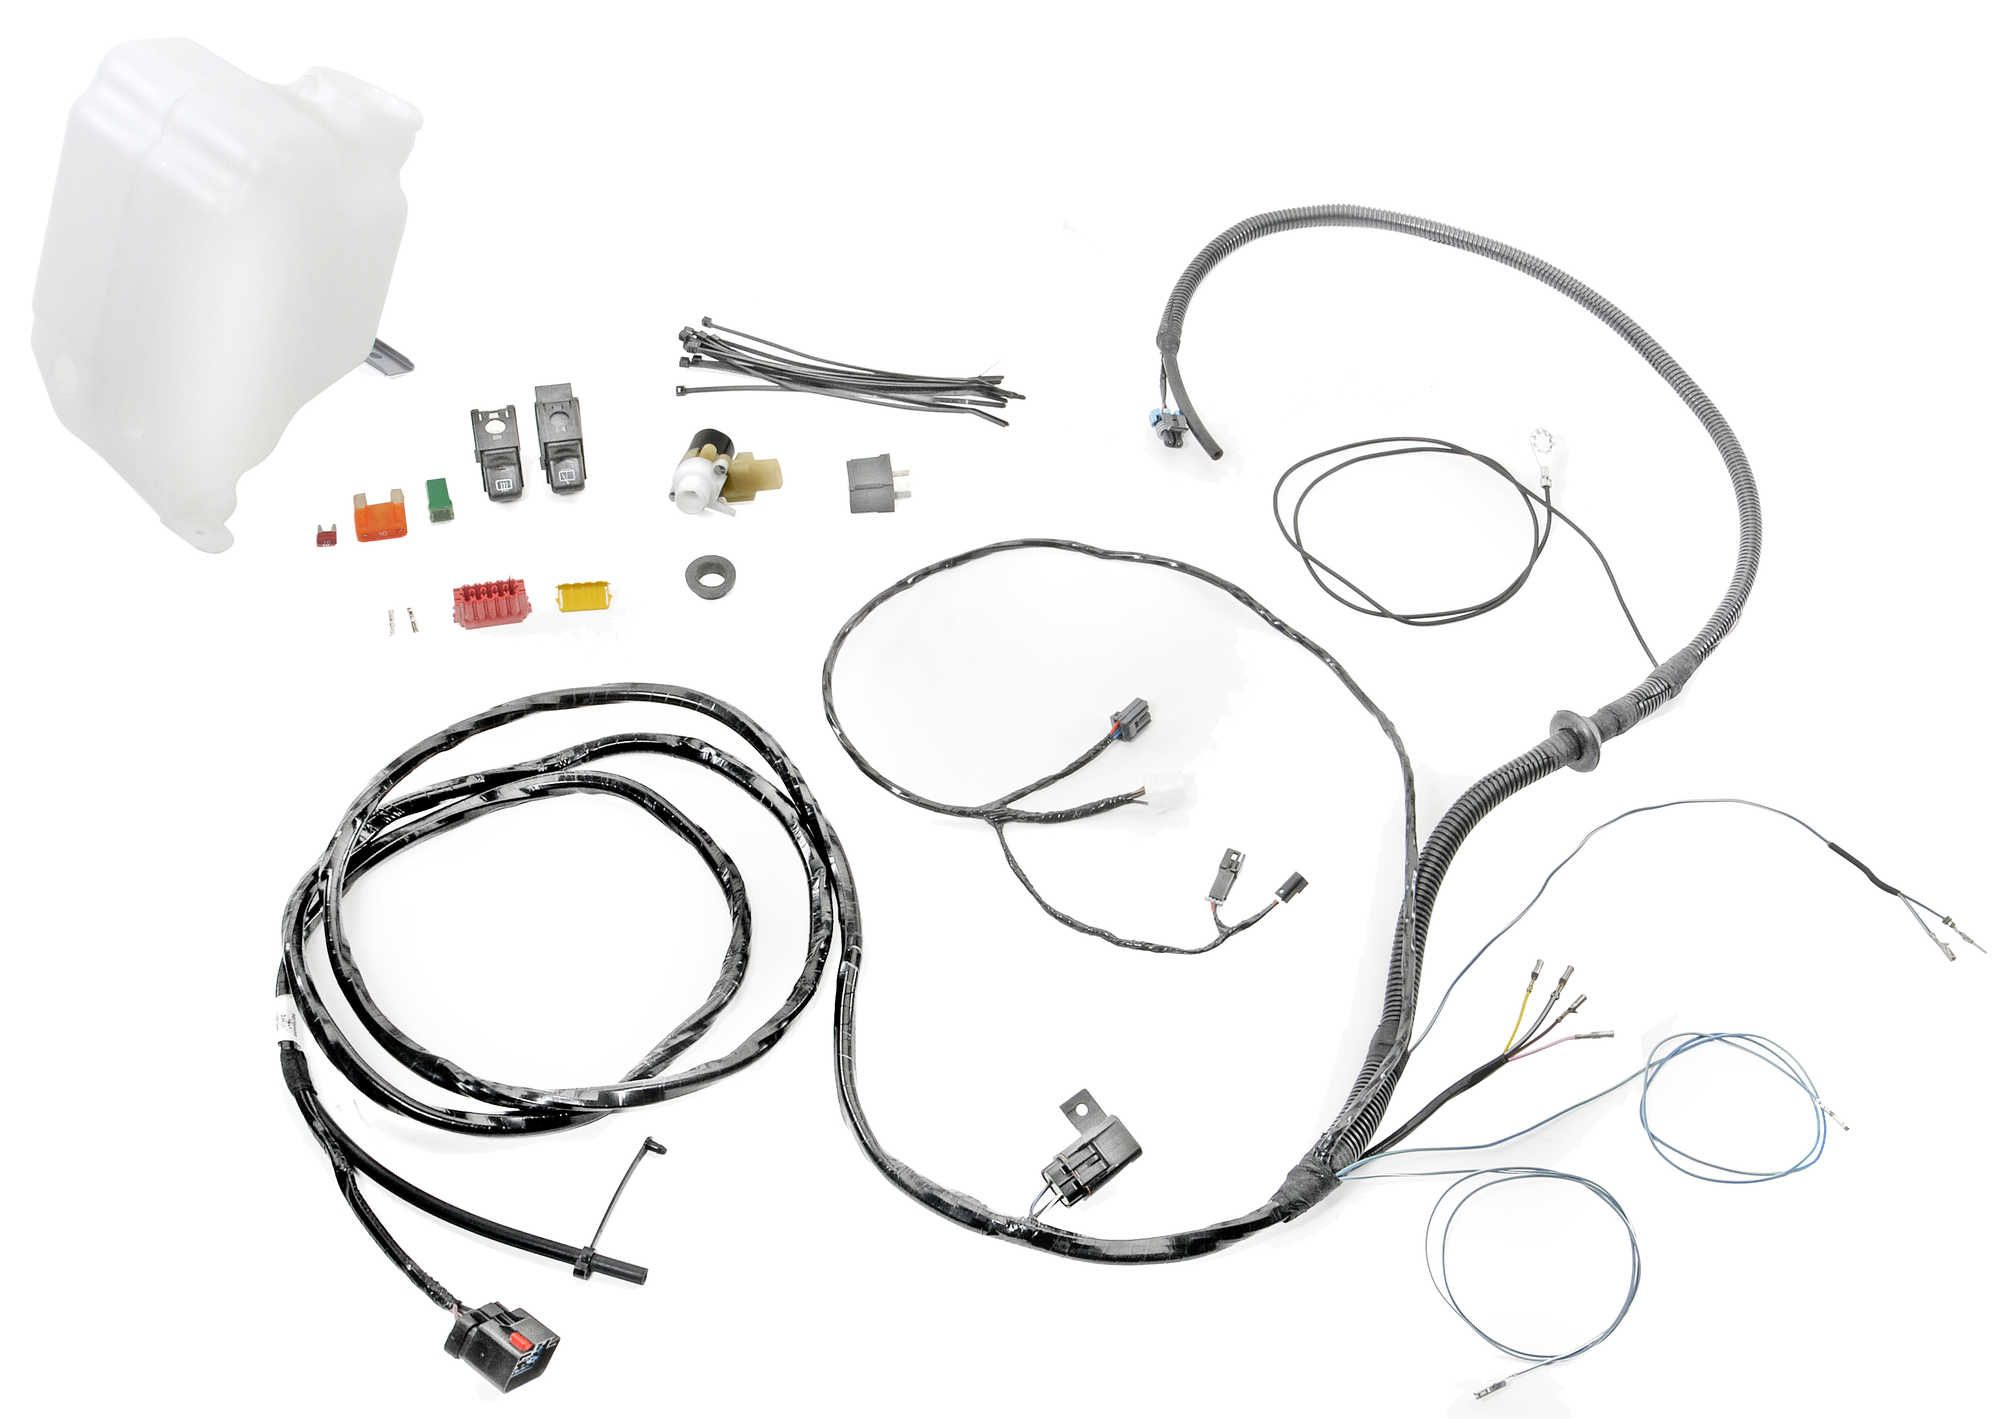 This Brand New Oe Mopar Hard Top Wiring Kit Includes Everything You Harness Need To Install